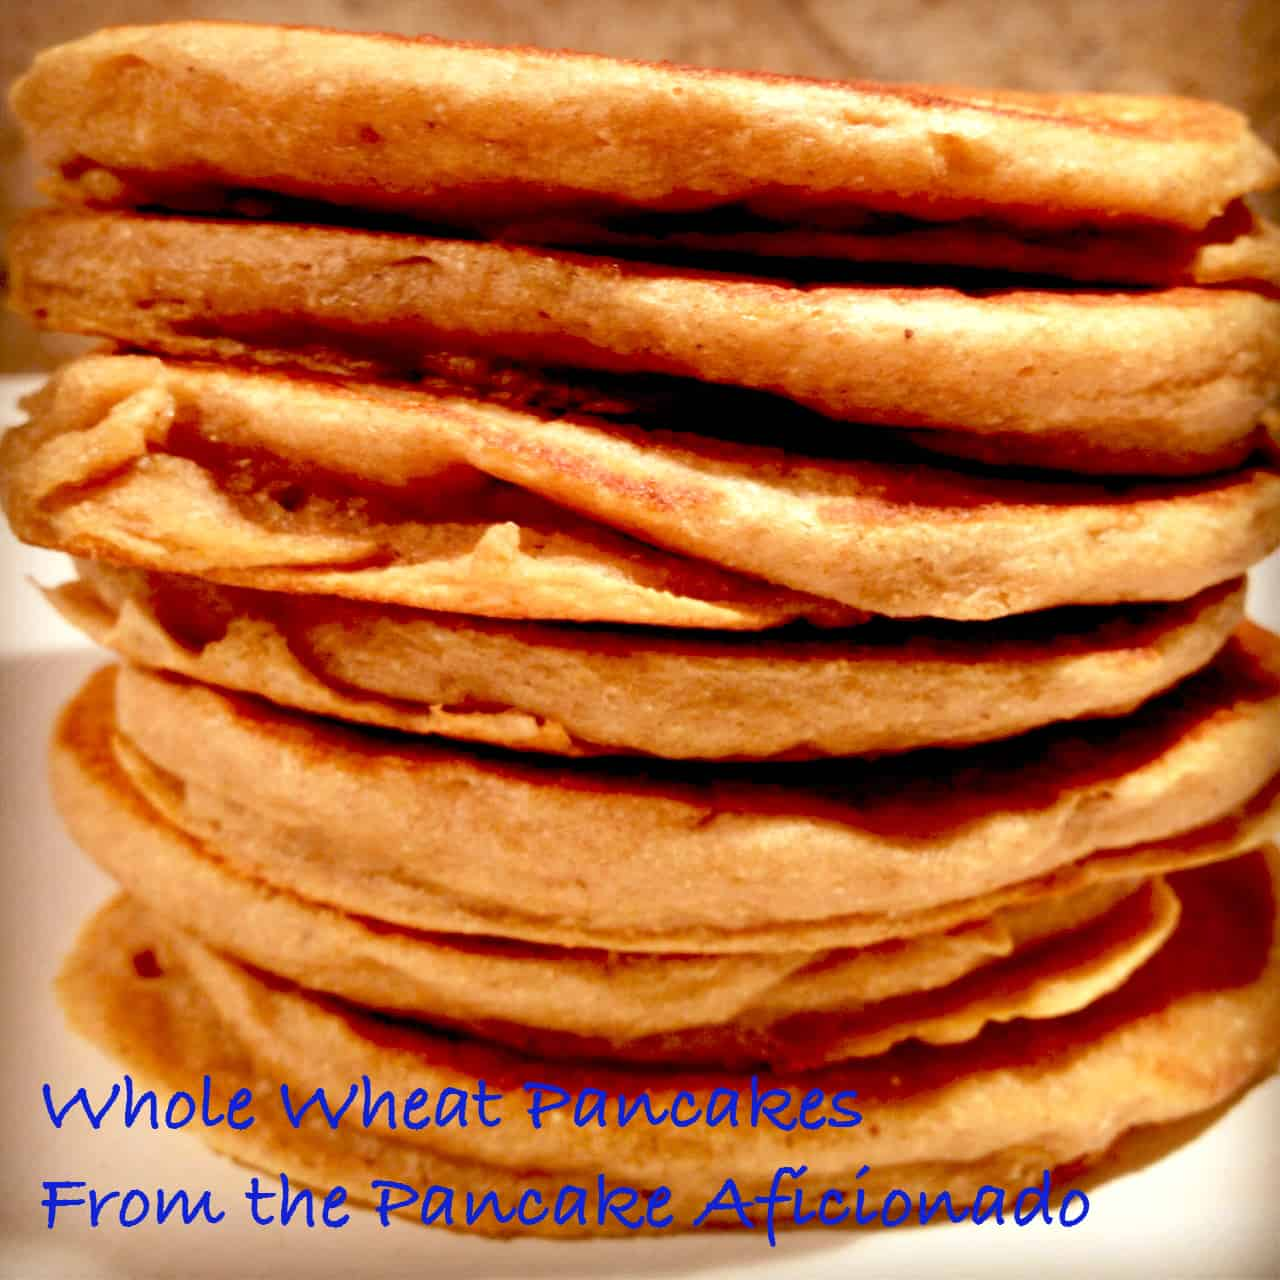 Whole wheat pancakes from scratch -easy recipe